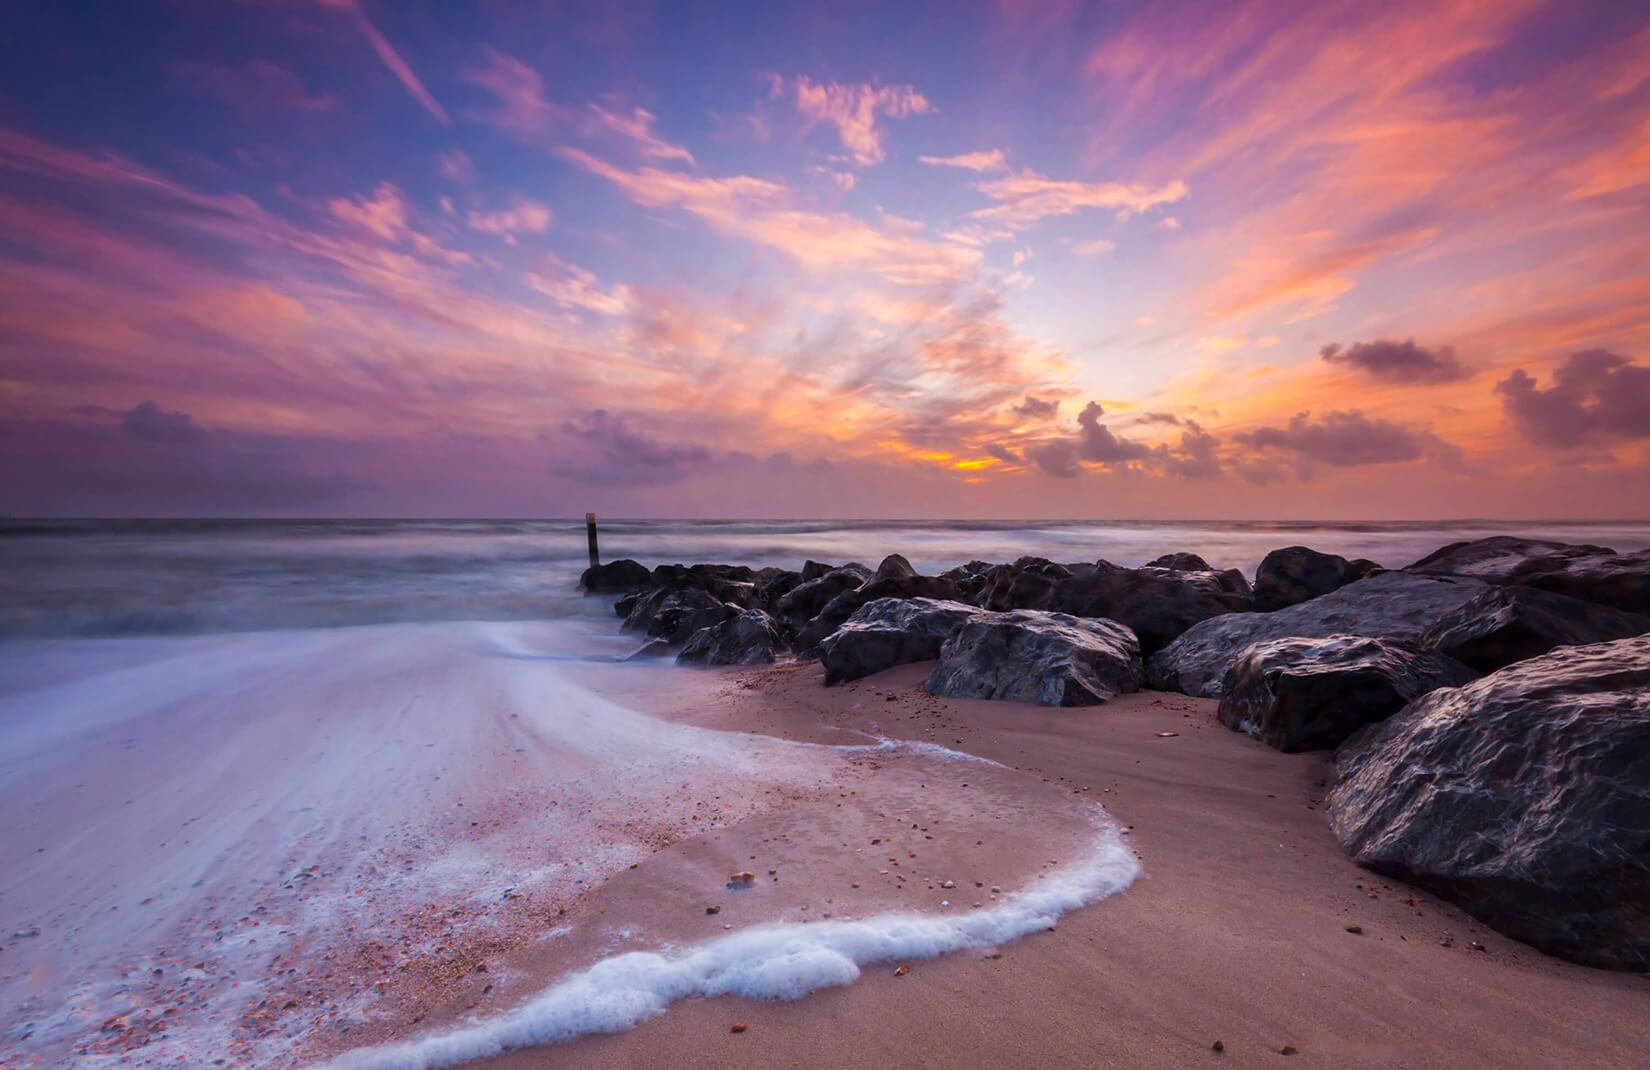 Sea foam Shoreline Wall Mural (With images) Beach sunset